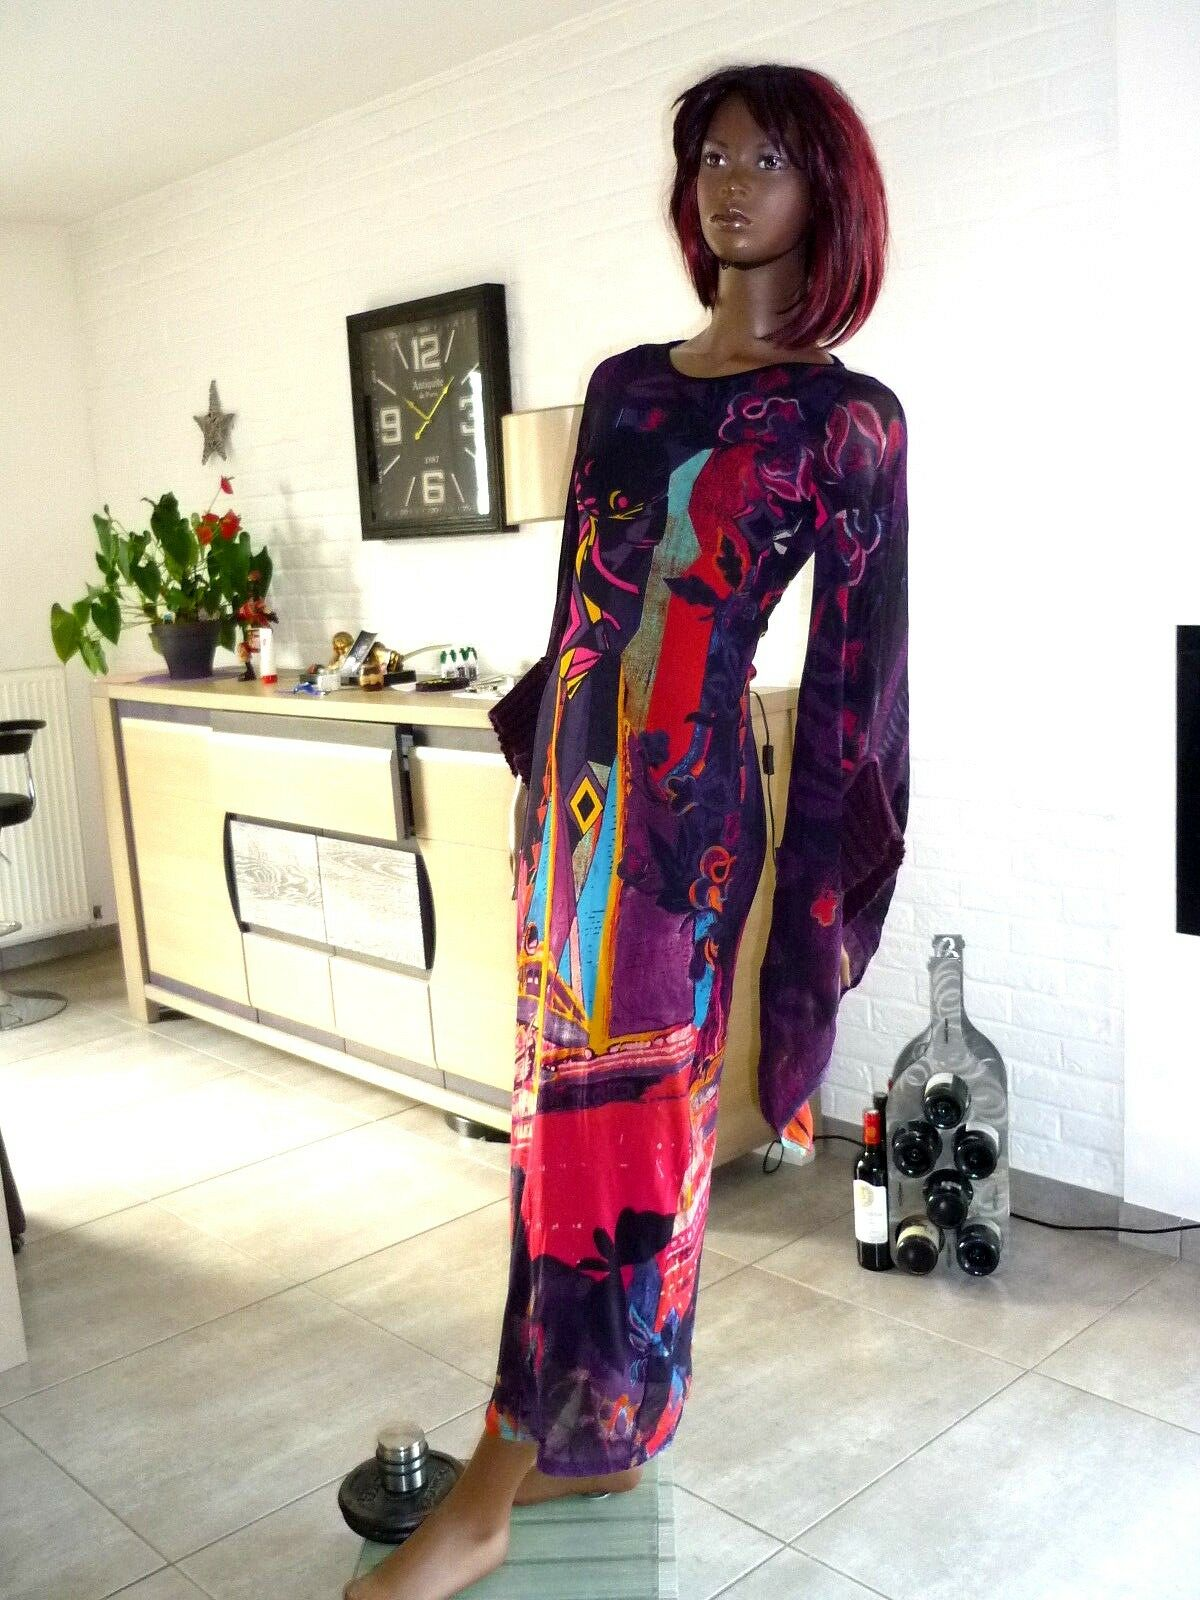 A VOIR      MAJESTUEUSE  LONGUE  ROBE coloreEE       SAVE THE QUEEN     TM  NEUVE 152c0f